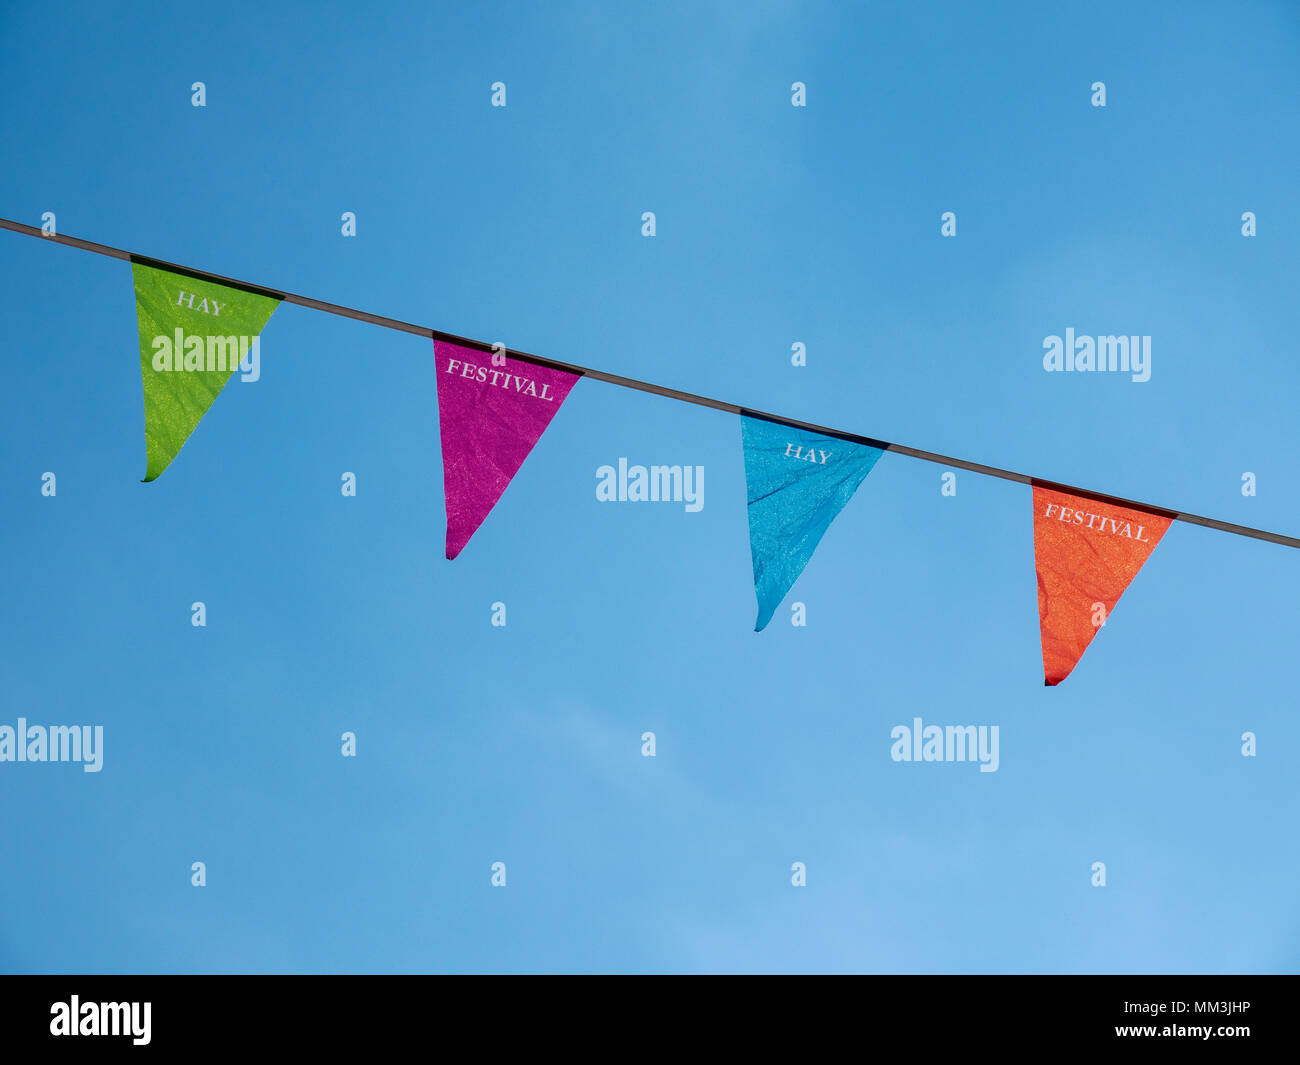 Colourful bunting in Hay-on-Wye advertise the Hay Festival for 2018 - Stock Image